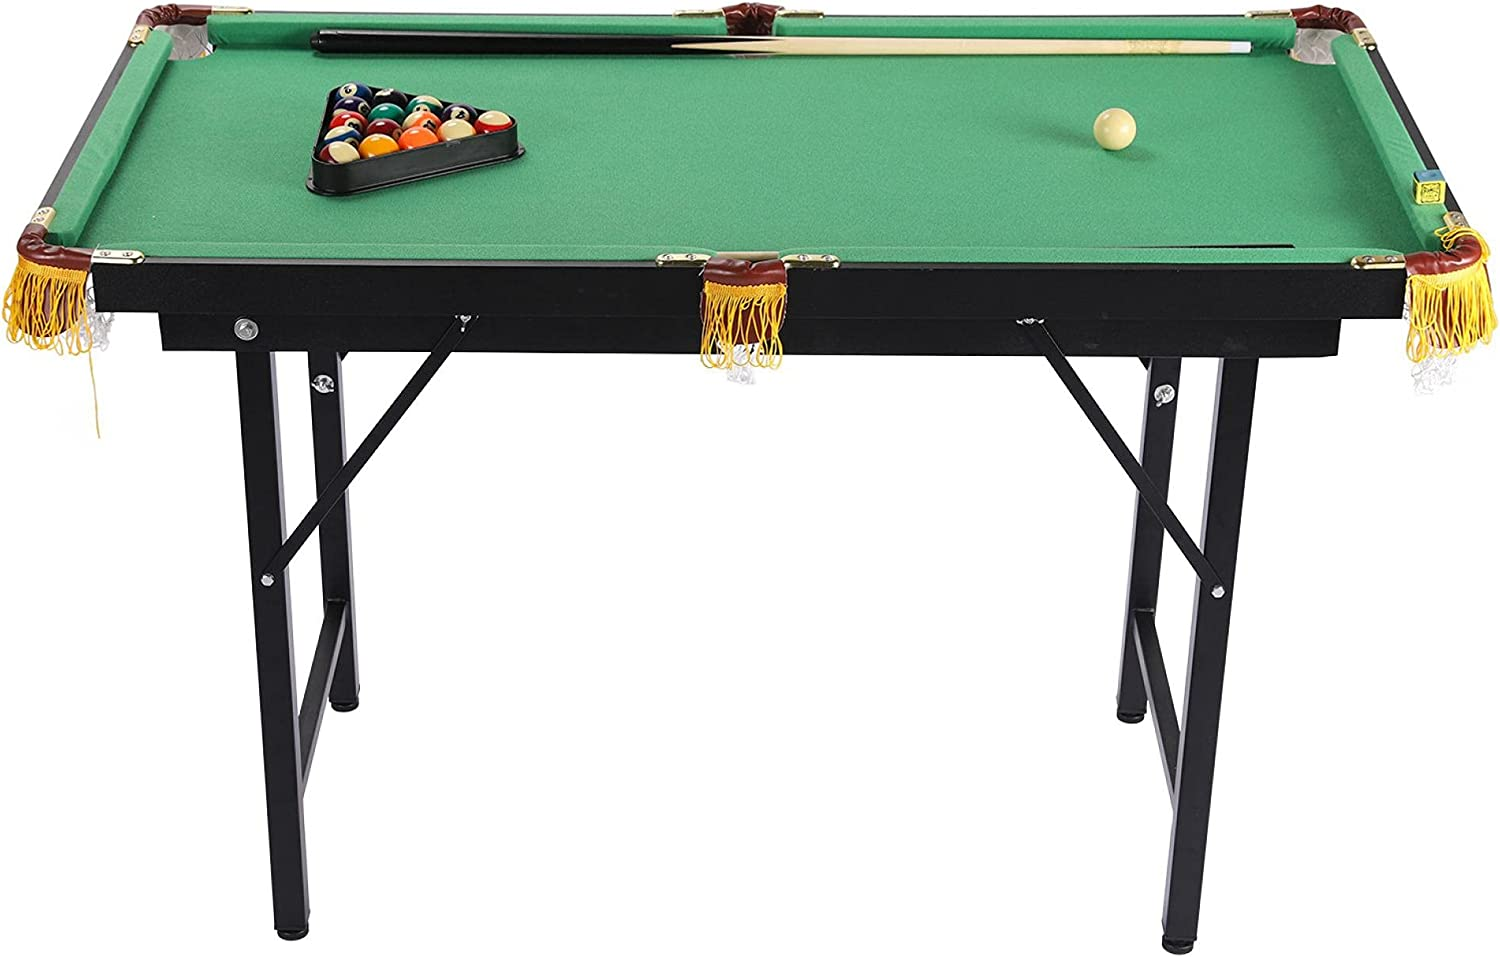 47 Inches Portable Billiard Table Height Adjustable for Clearance Omaha Mall SALE Limited time Chi with